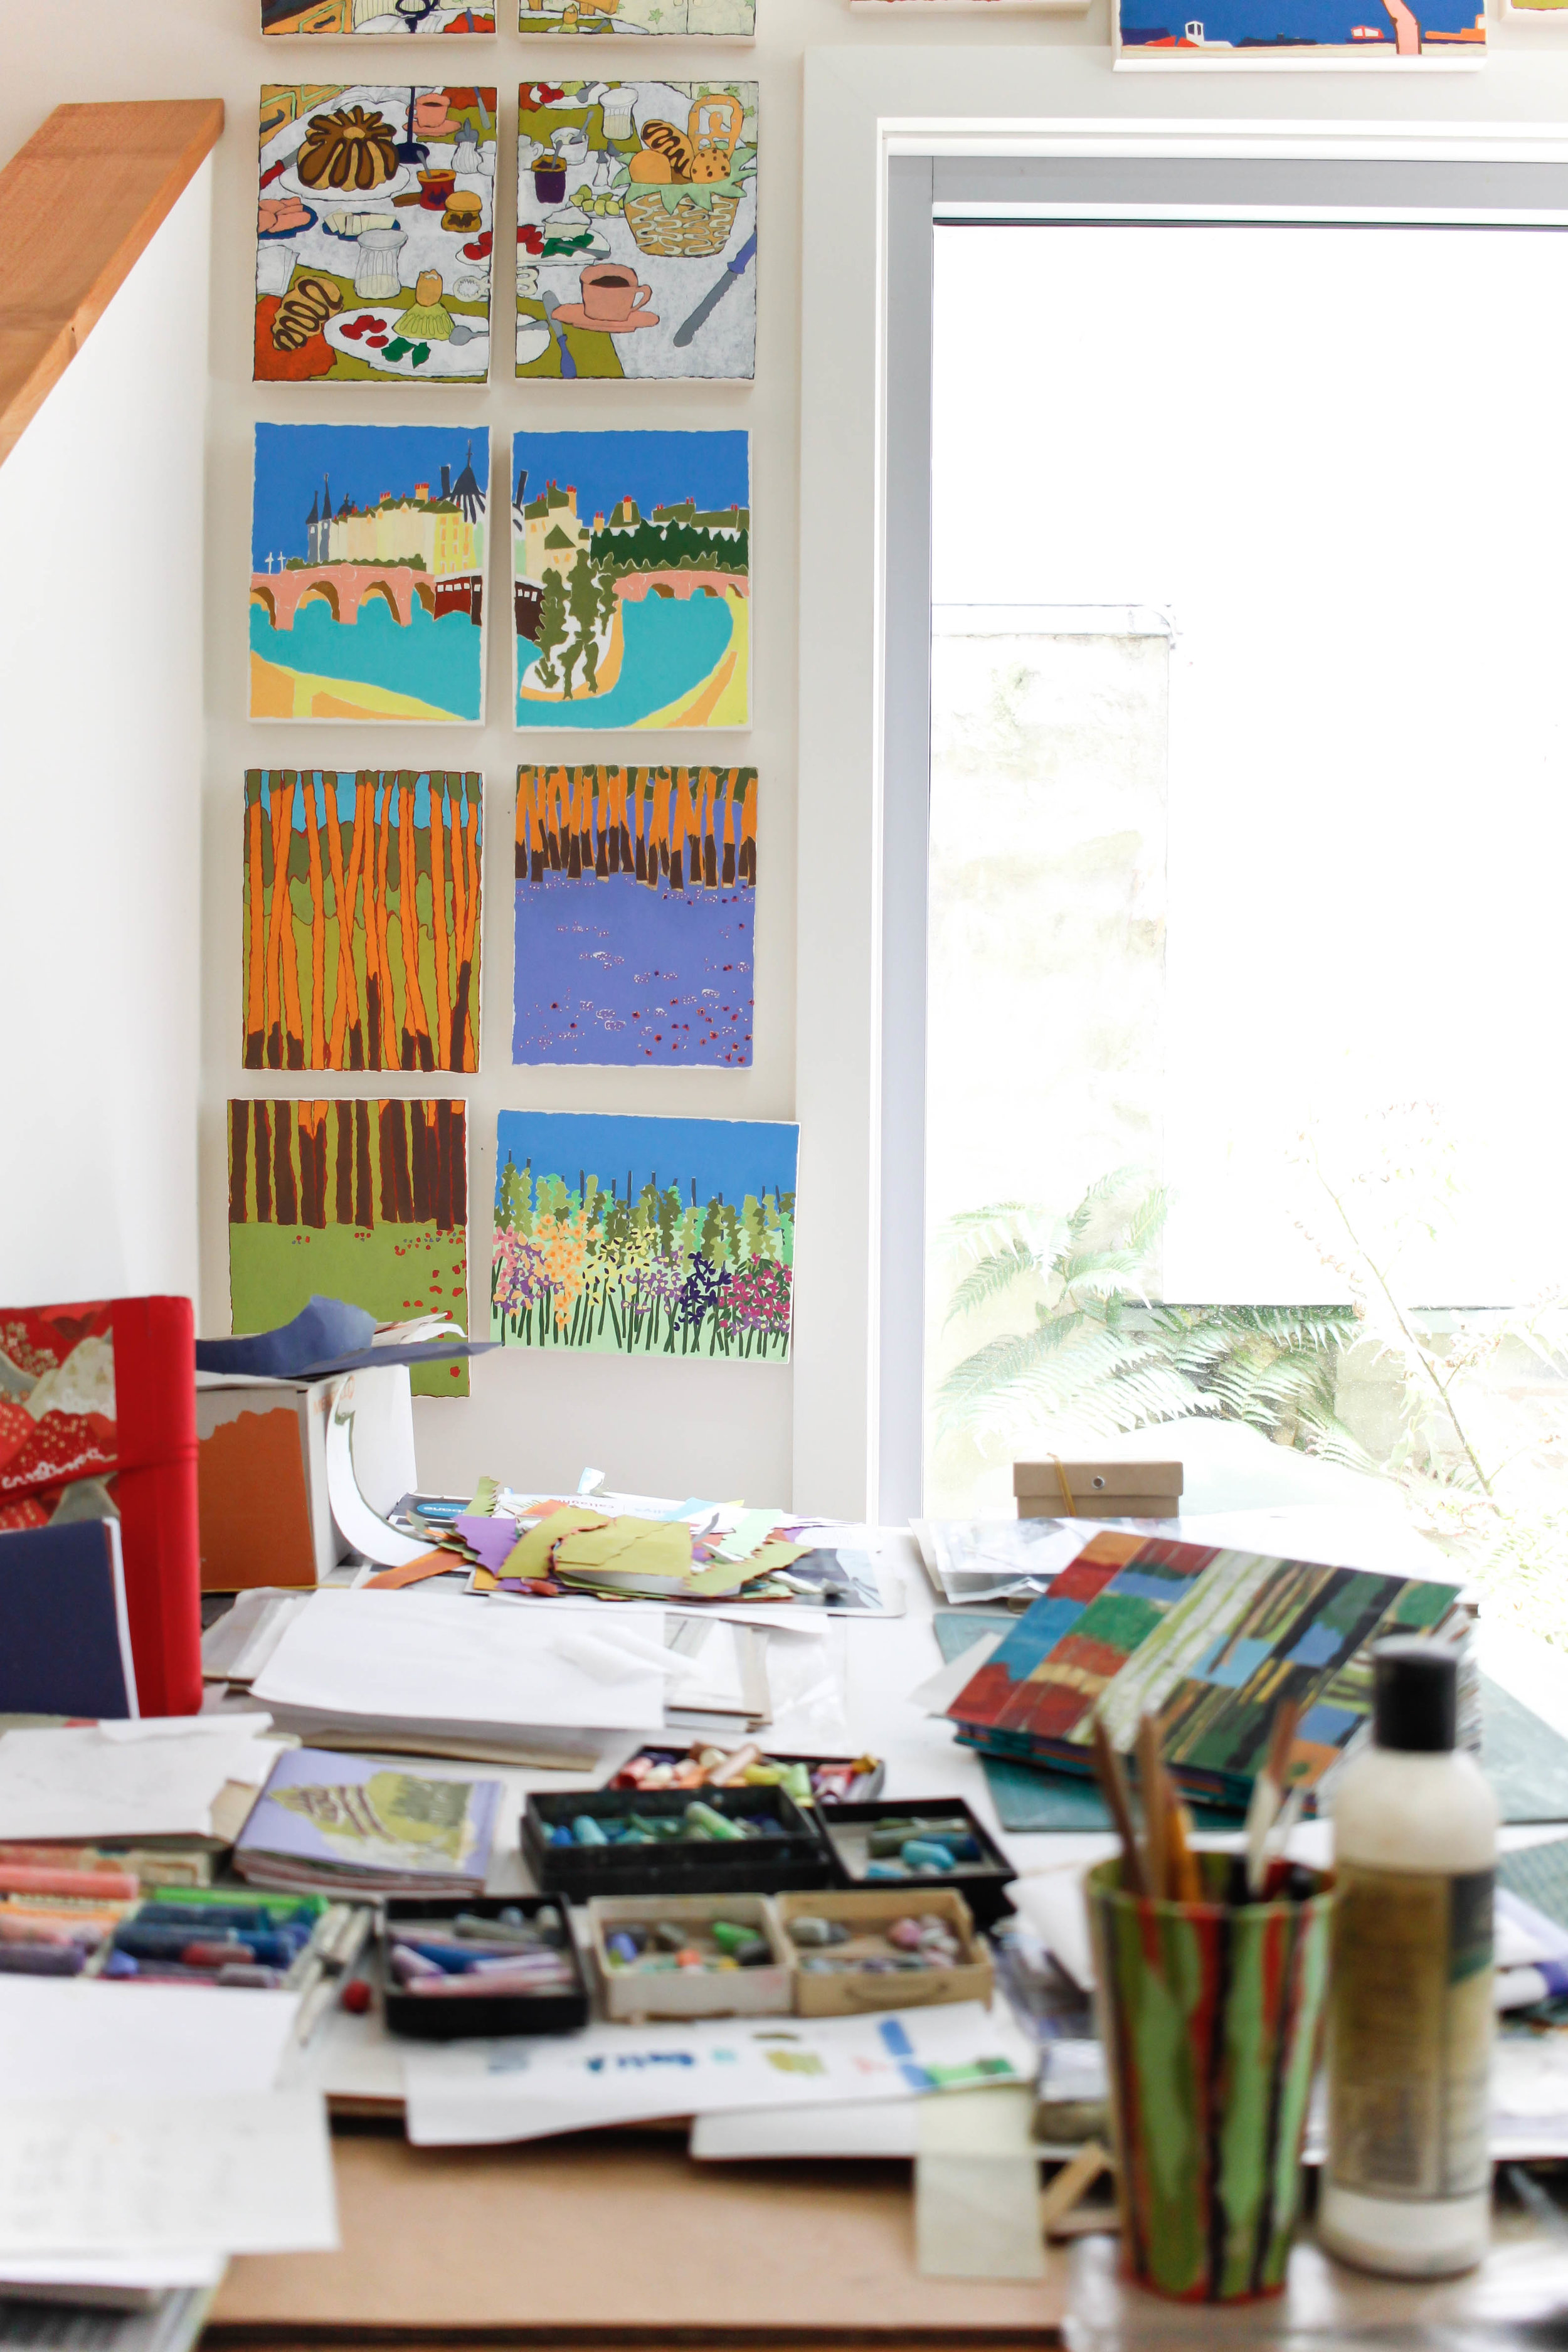 The Corner Store Gallery - studio visit with Australian artist Jan Spencer